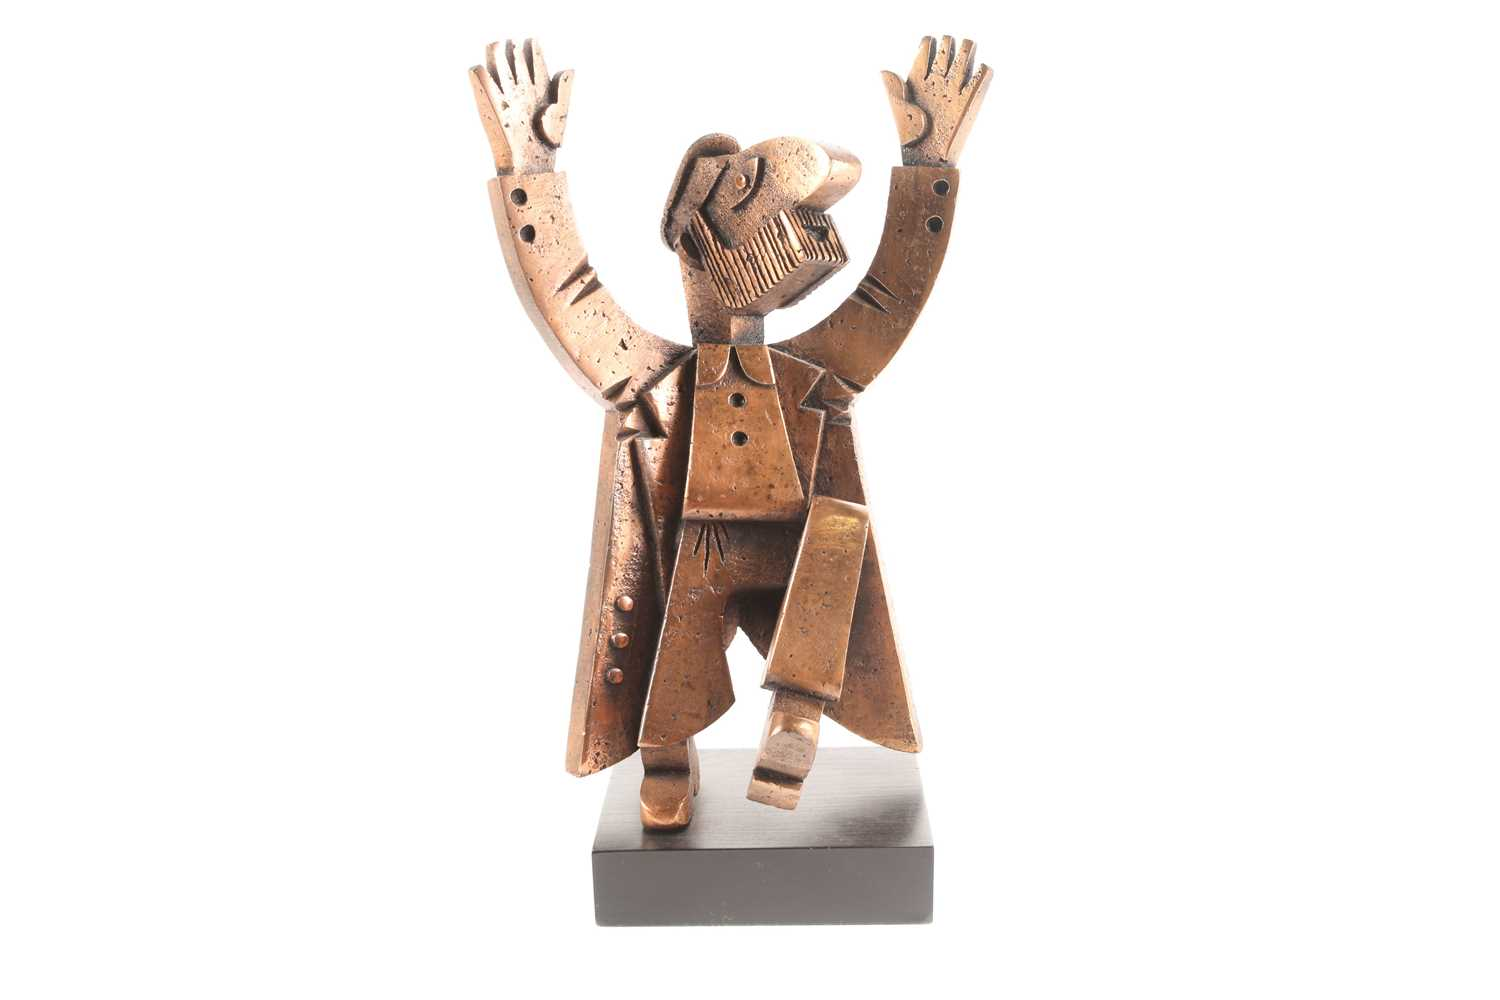 Frank Meisler (1929-2018) Israel, an abstract bronzed metal sculpture of a Rabbi, standing on a